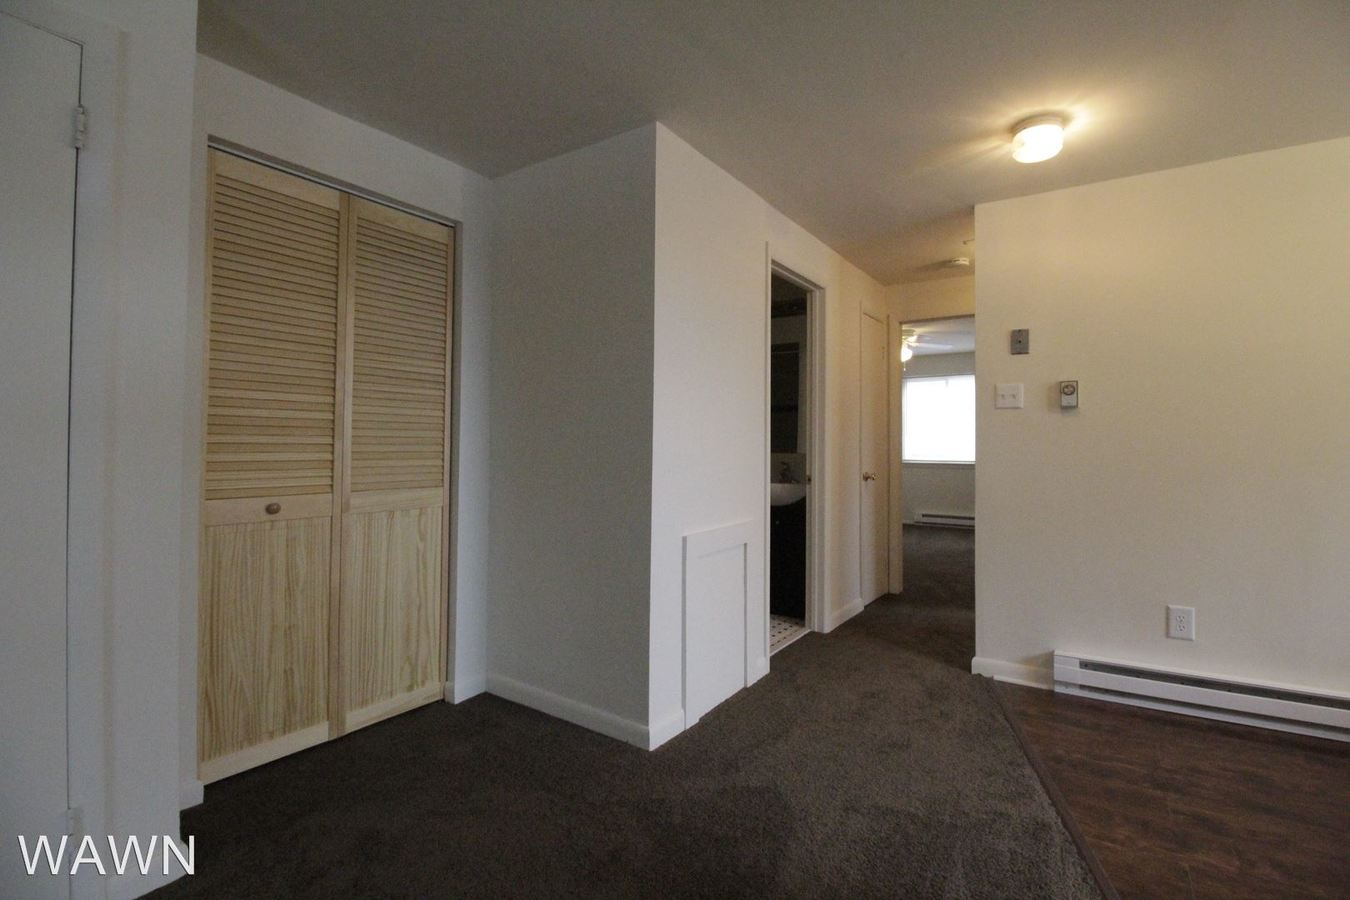 2 Bedrooms 1 Bathroom Apartment for rent at 617 N White Horse Pike in Lindenwold, NJ